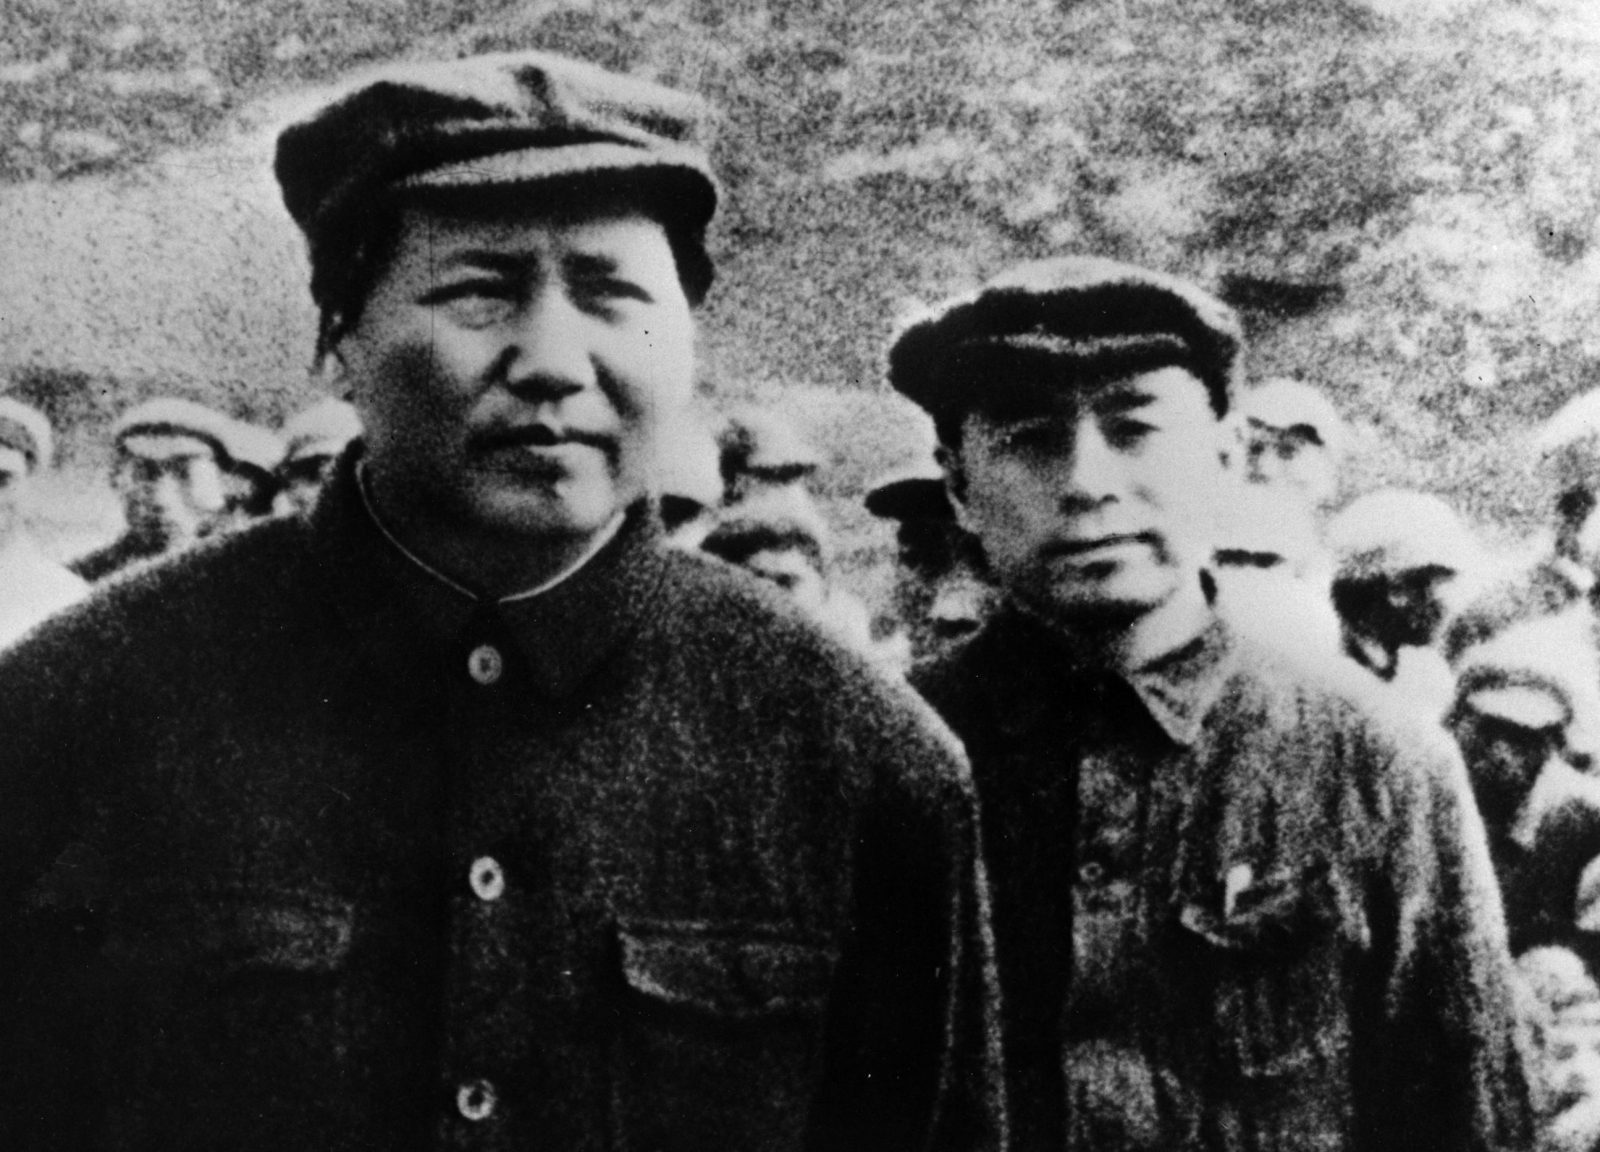 a history of the chinese communist party in china The research question that will be investigated in this essay is how the long march helped in the rise of the chinese communist party (ccp) in china.